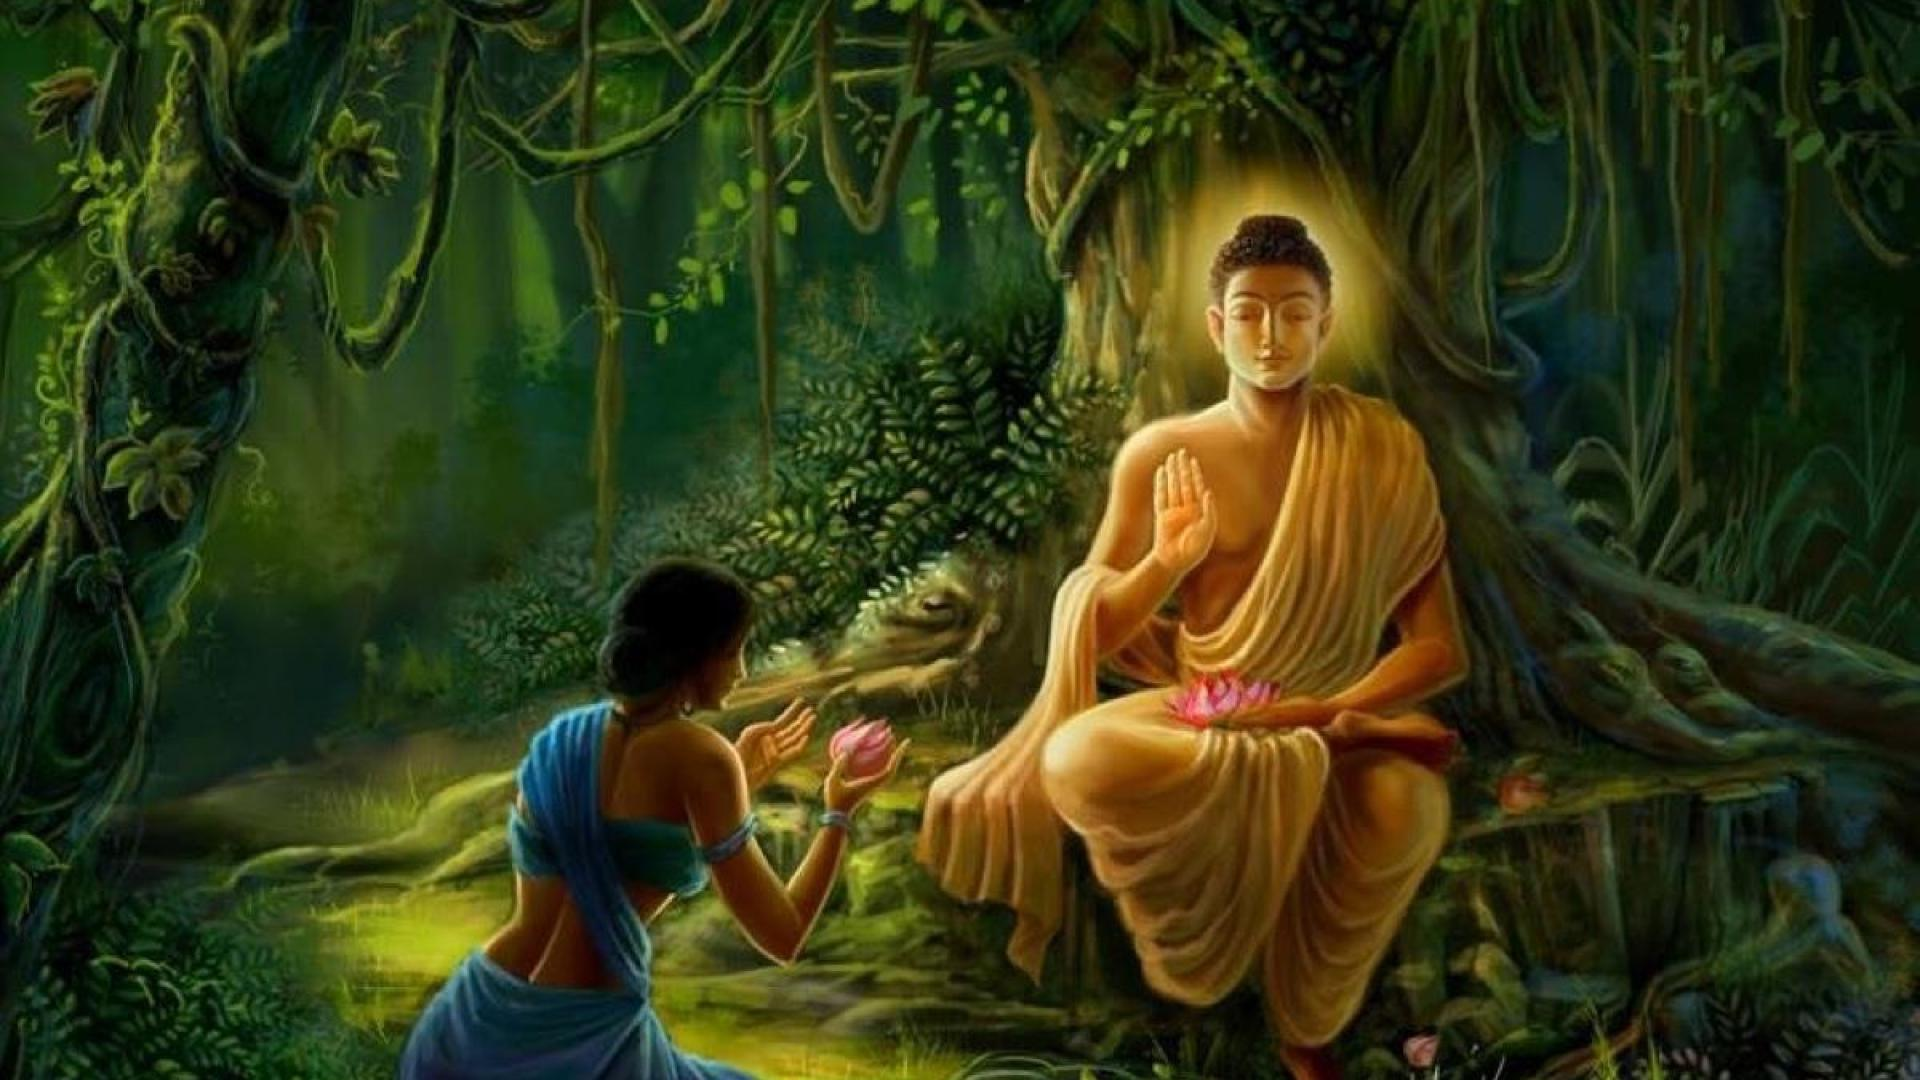 Lord buddha images for mobile 1